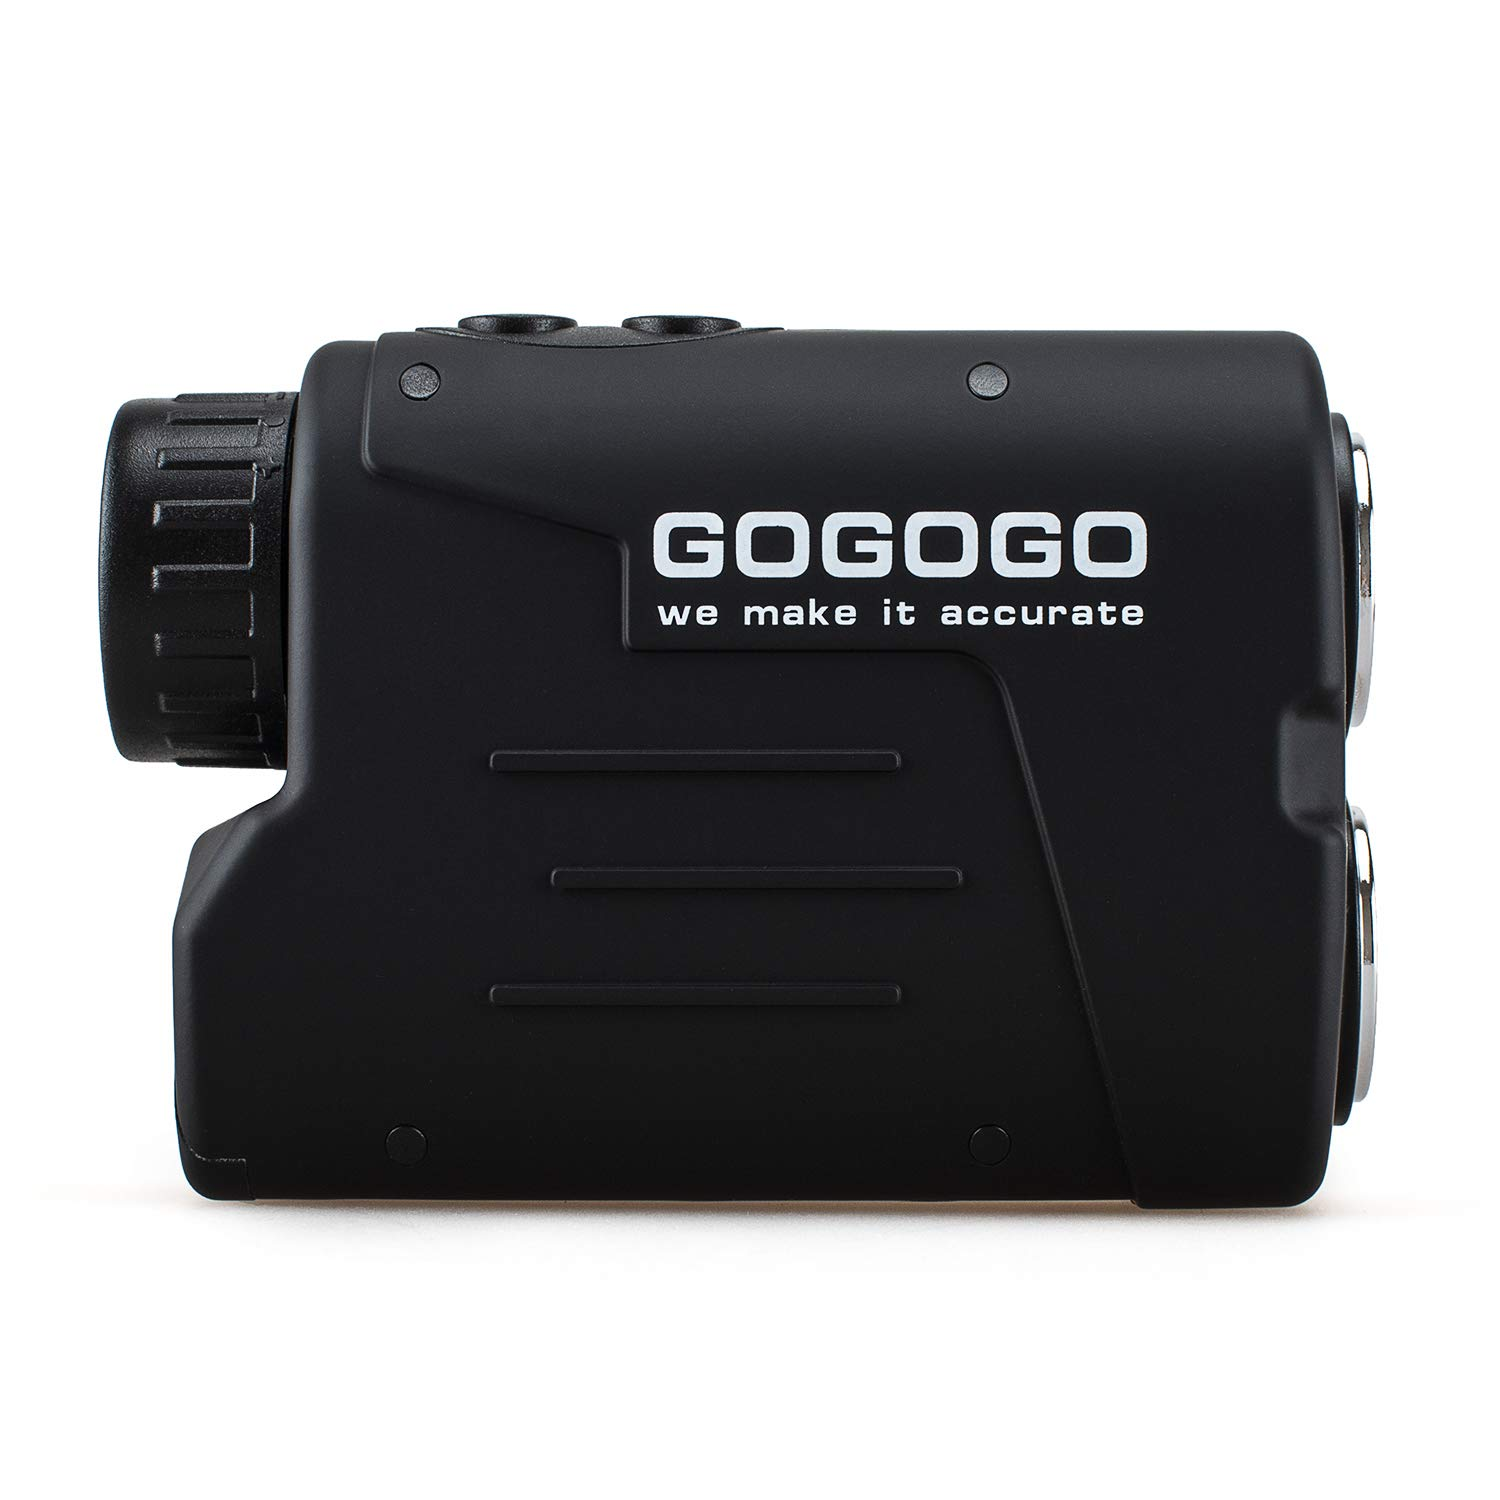 Gogogo Sport Laser Golf/Hunting Rangefinder, 6X Magnification 650/900 Yards Laser Range Finder, Accurate Range Scan, Slope Distance Correction, Pin-Seeker & Flag-Lock,Tournament Legal Golf Rangefinder by Gogogo Sport